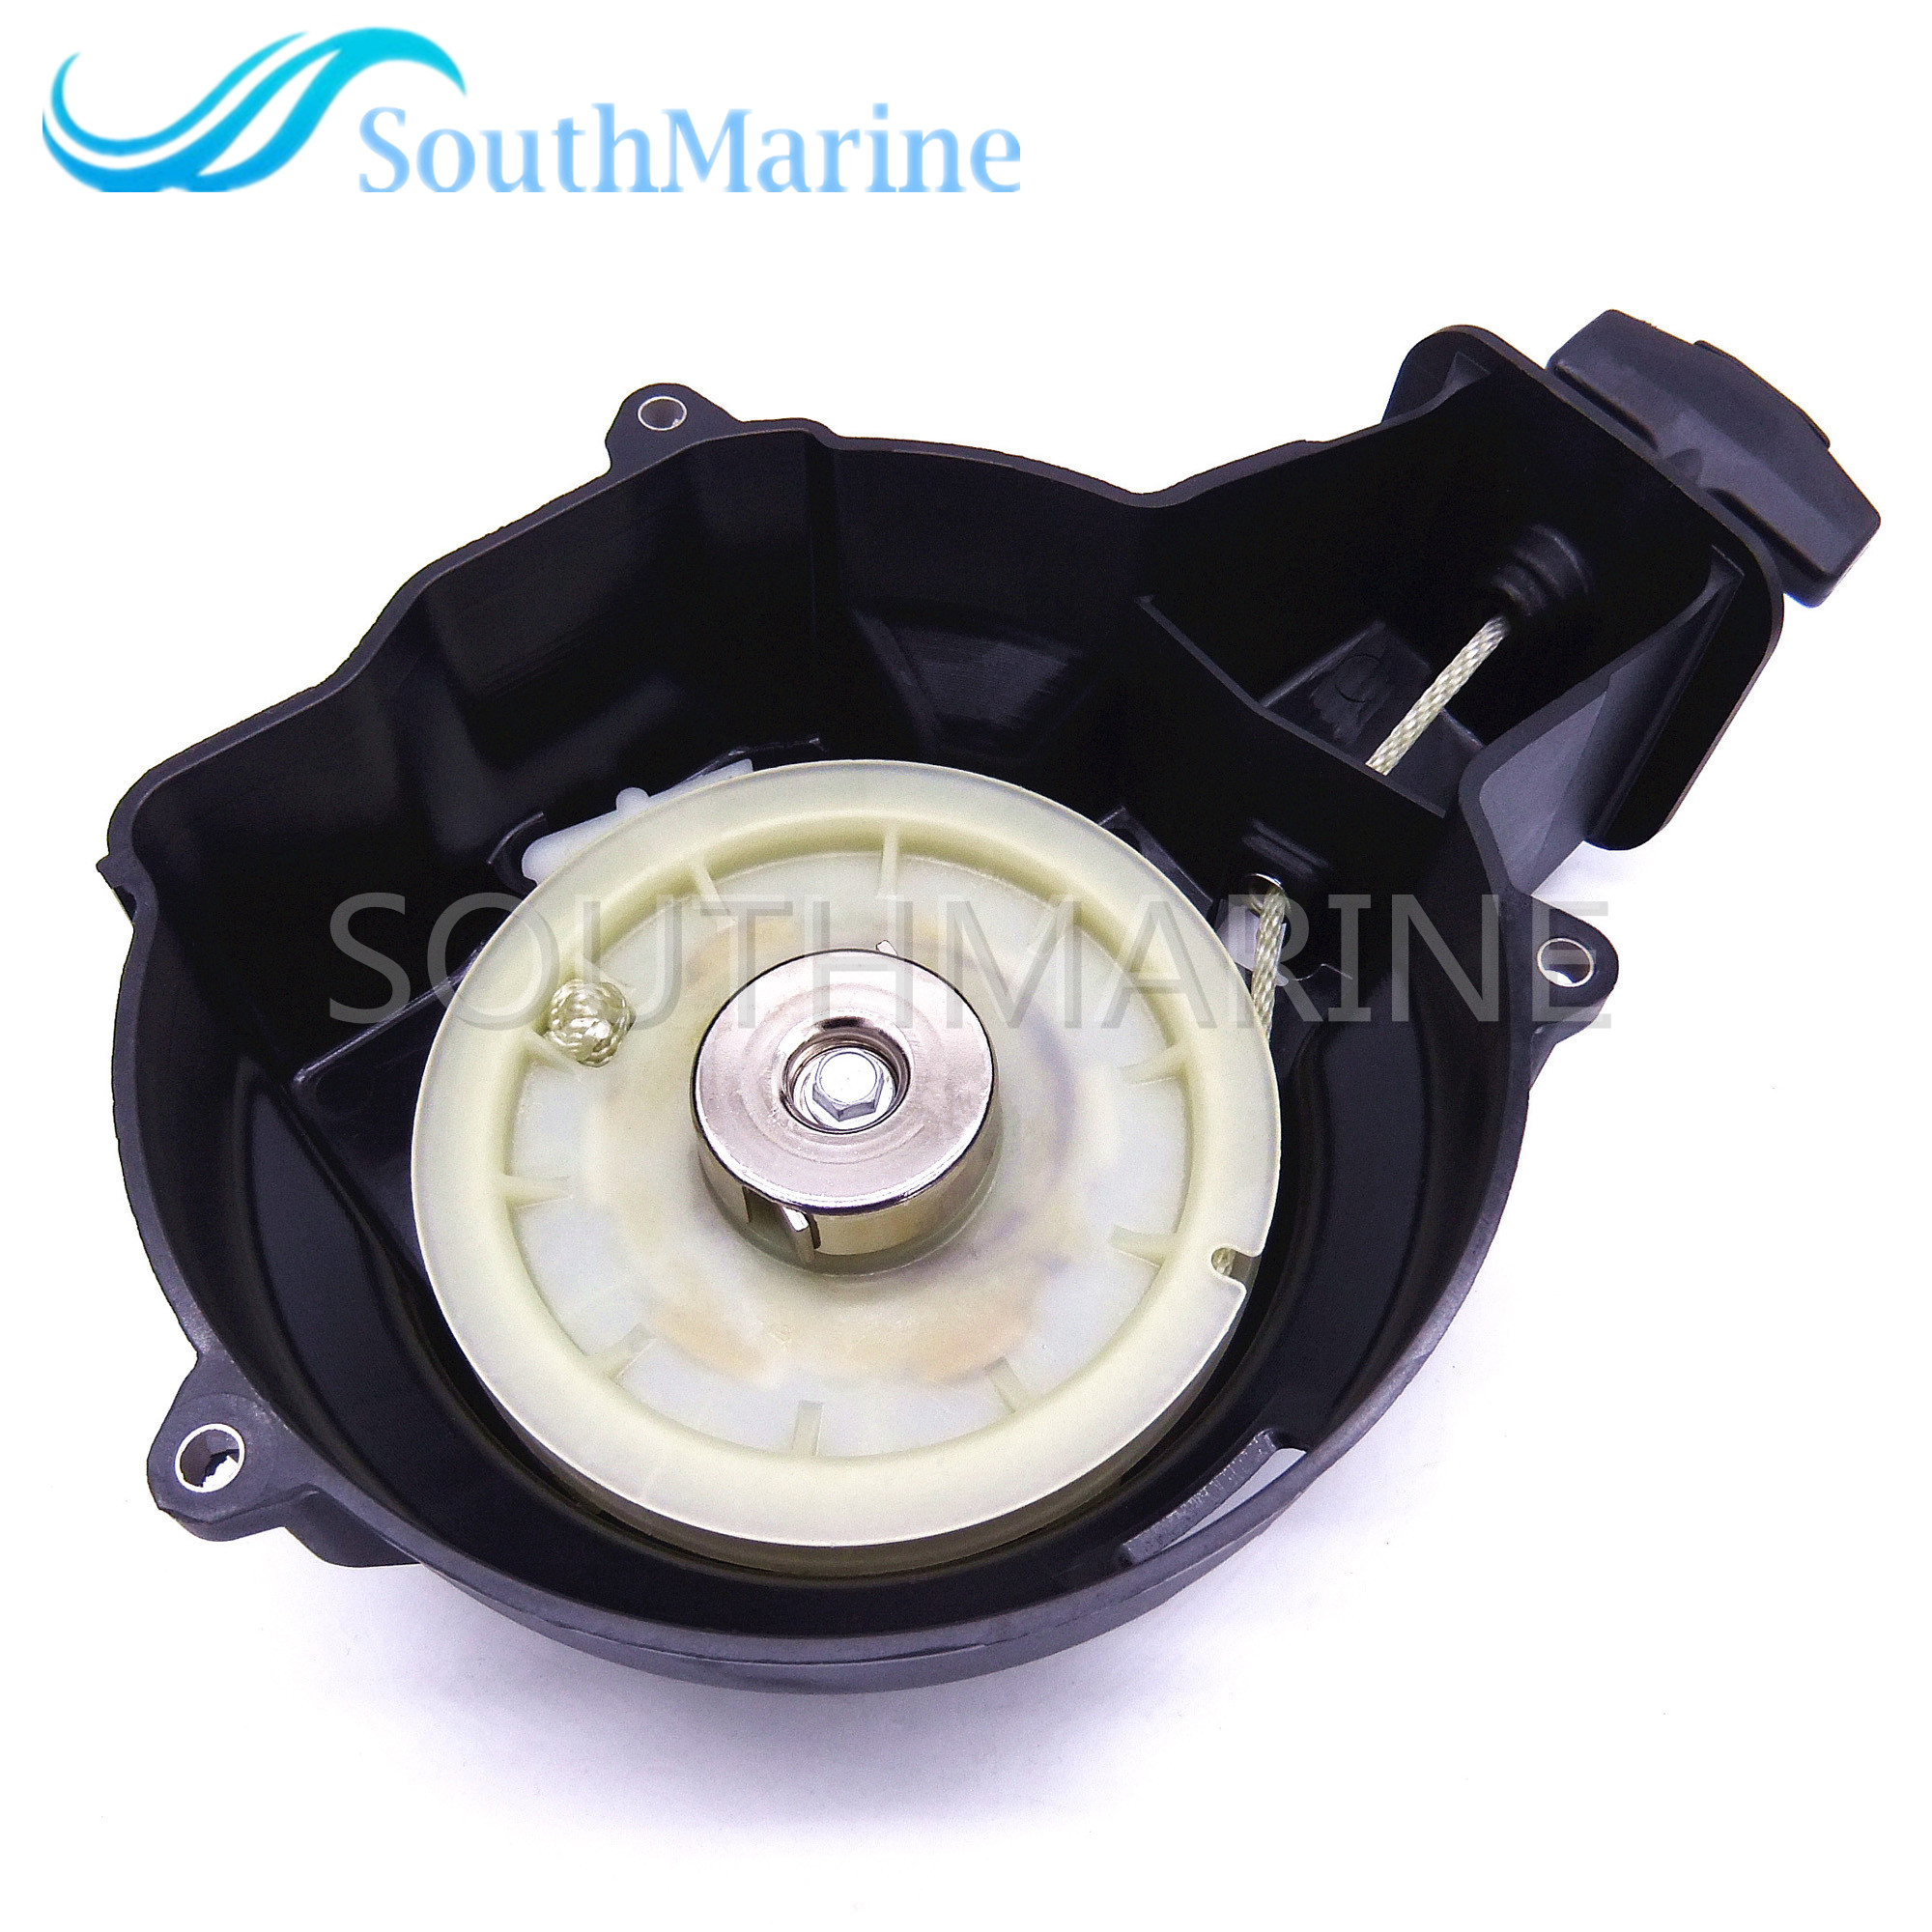 Outboard Motors Starter Assy T8-05050000 T6-05050000 for Parsun HDX T9.8 T8 T6 BM 2-stroke ,Free Shipping